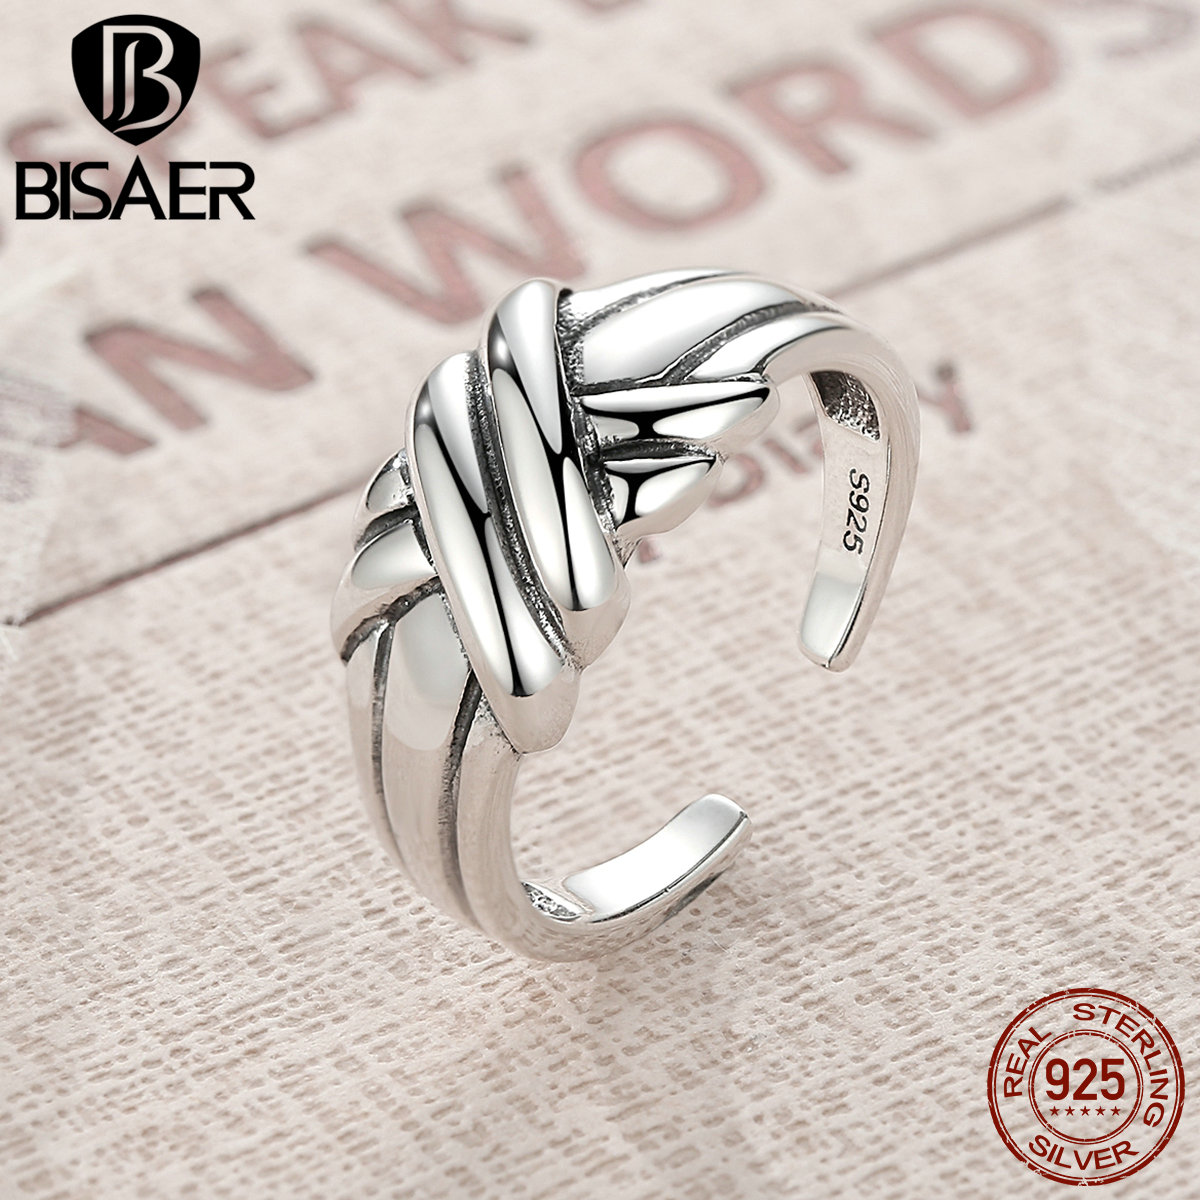 BISAER Pure 100% 925 Sterling Silver Vintage Cross Braided Knot Stackable Finger Ring Wedding Sterling Silver Jewelry GZR002